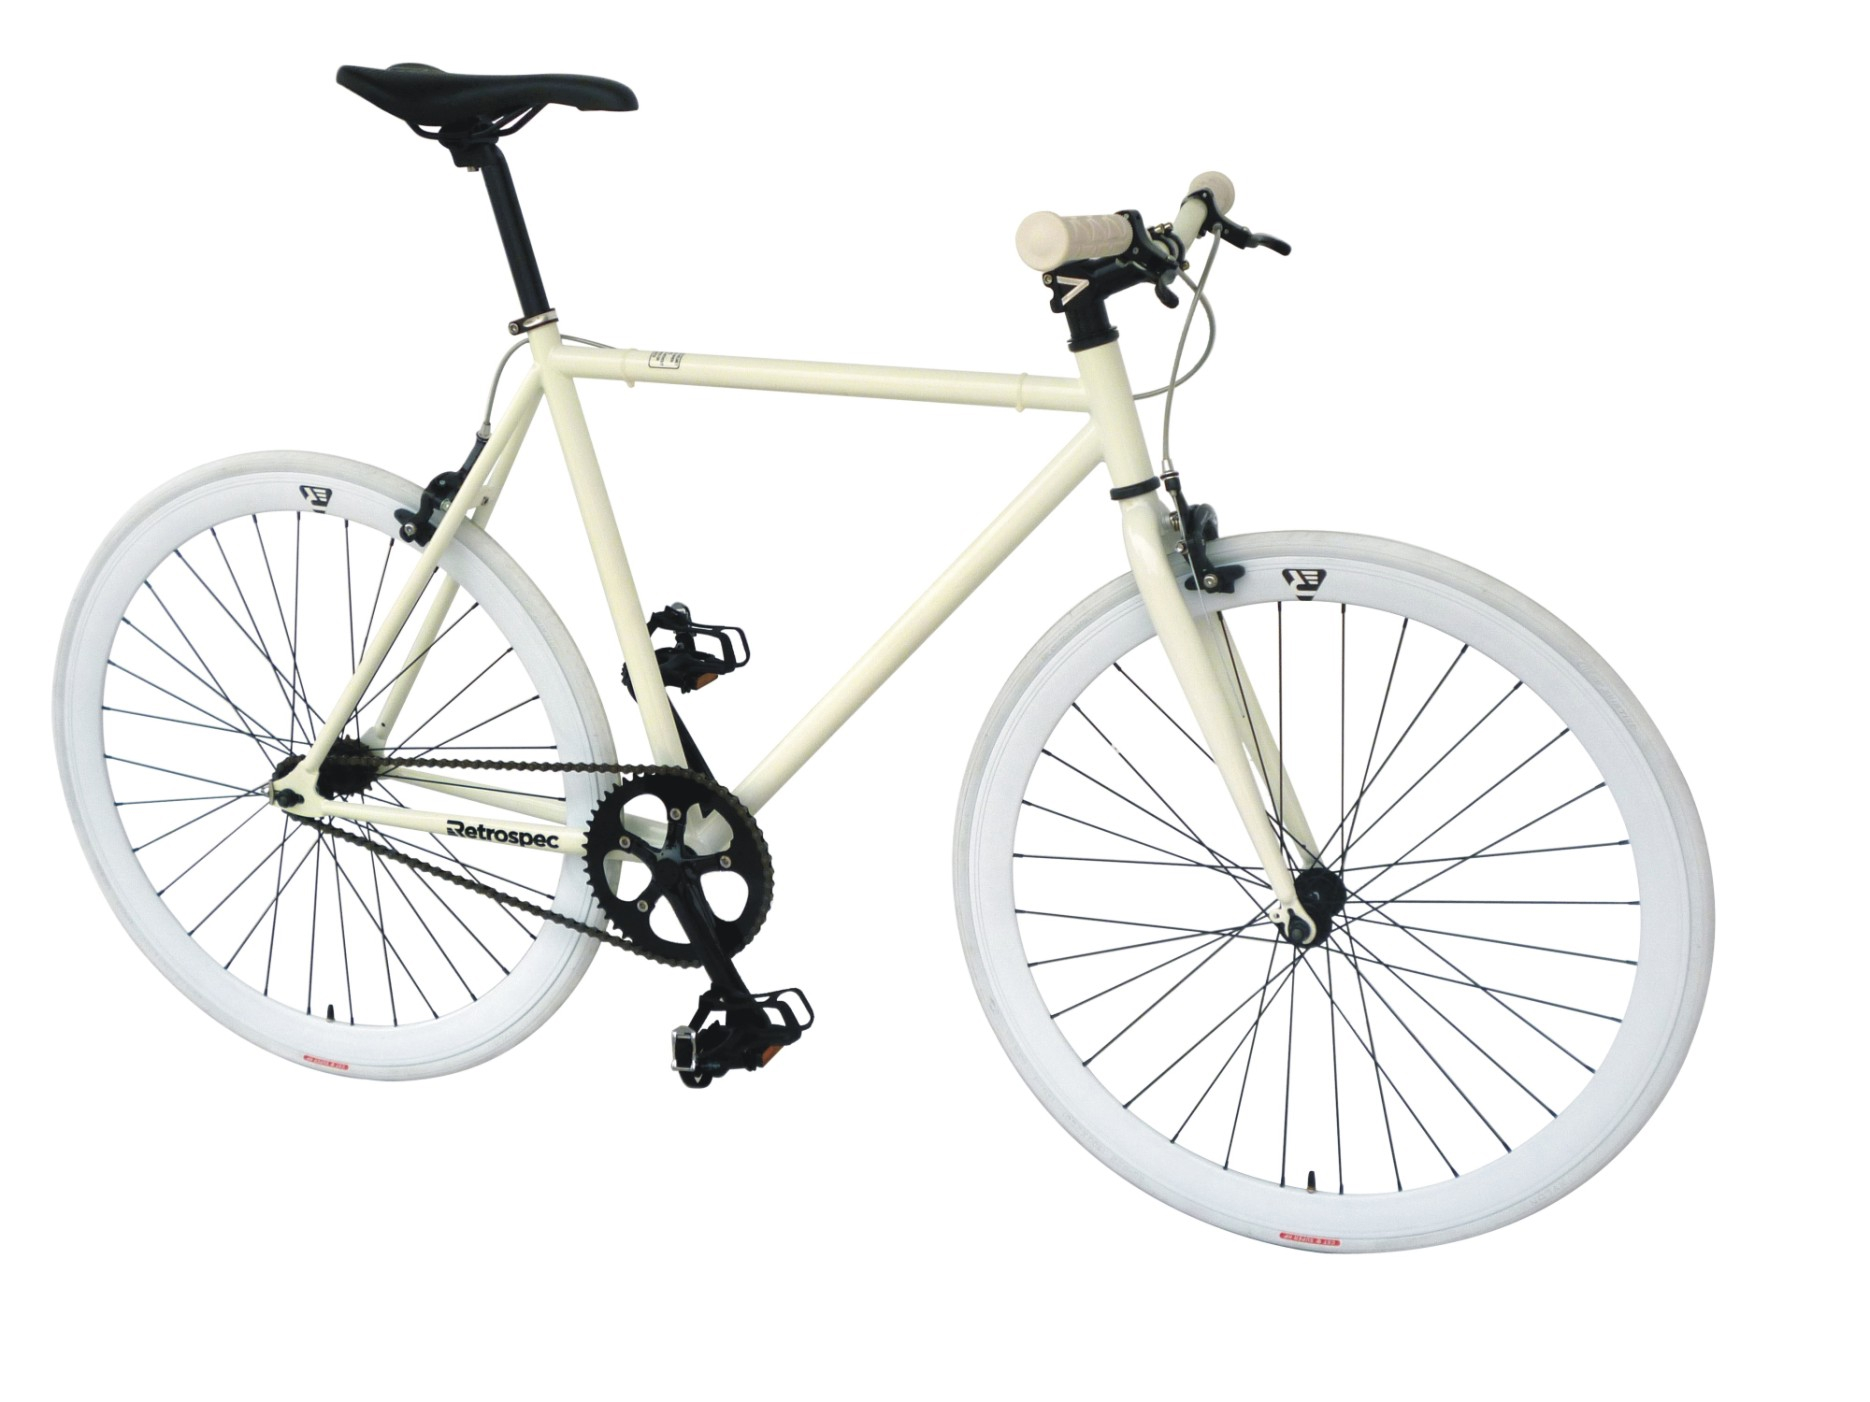 Retrospec Lumi 700C Fixy - Luminescent